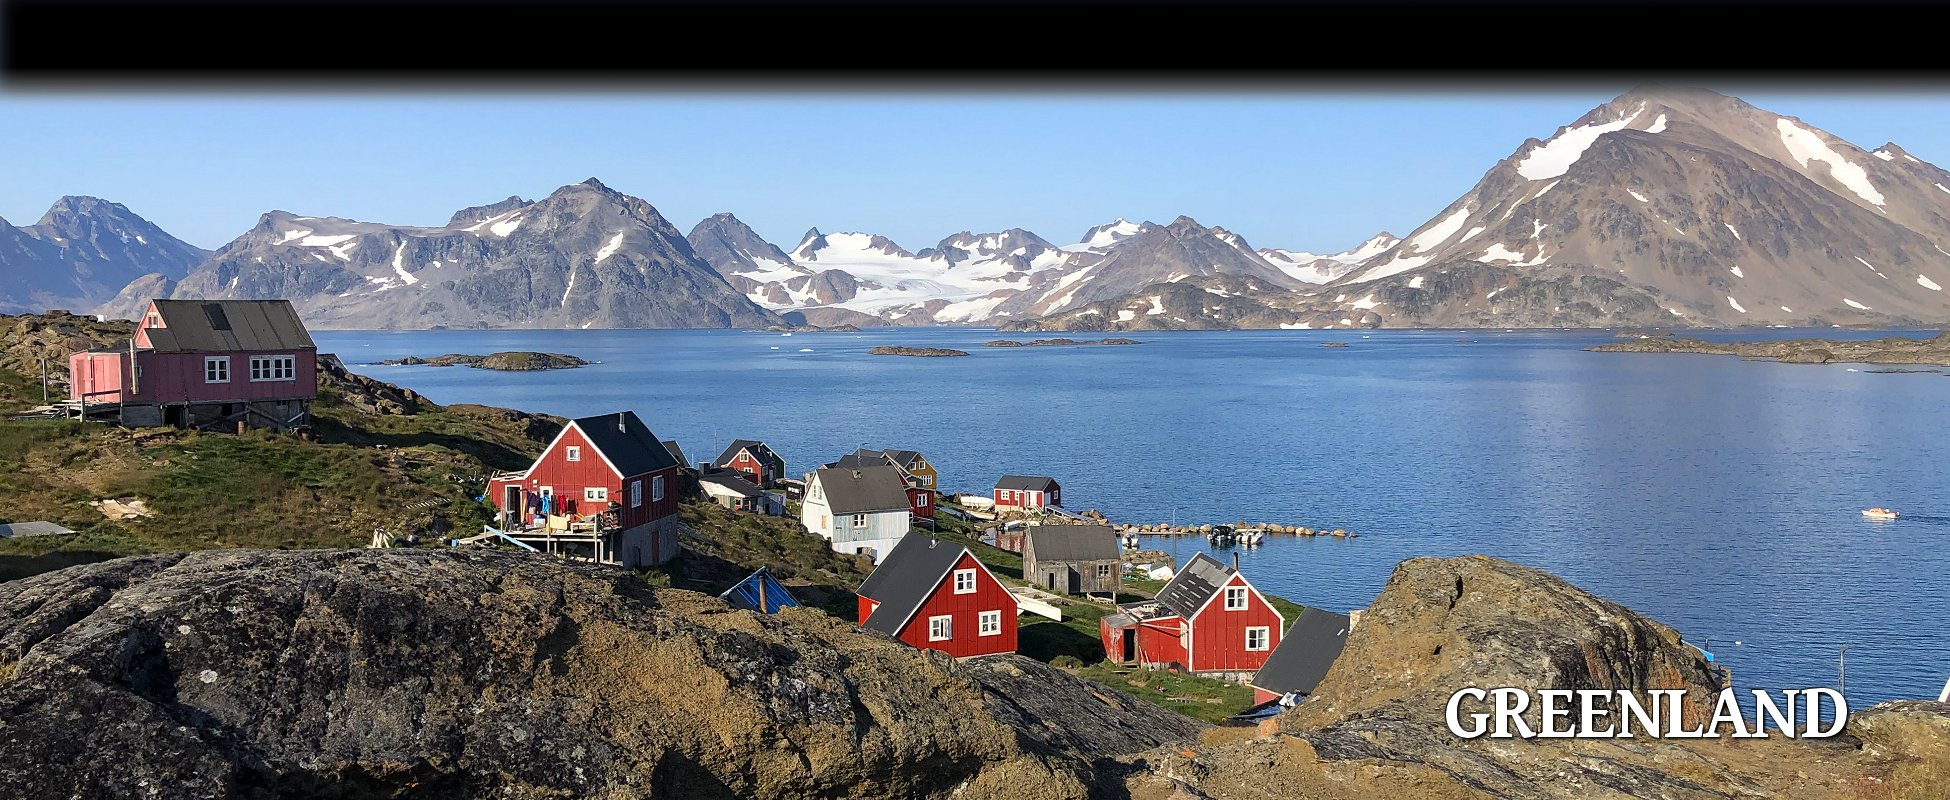 Greenland Trek What to Expect